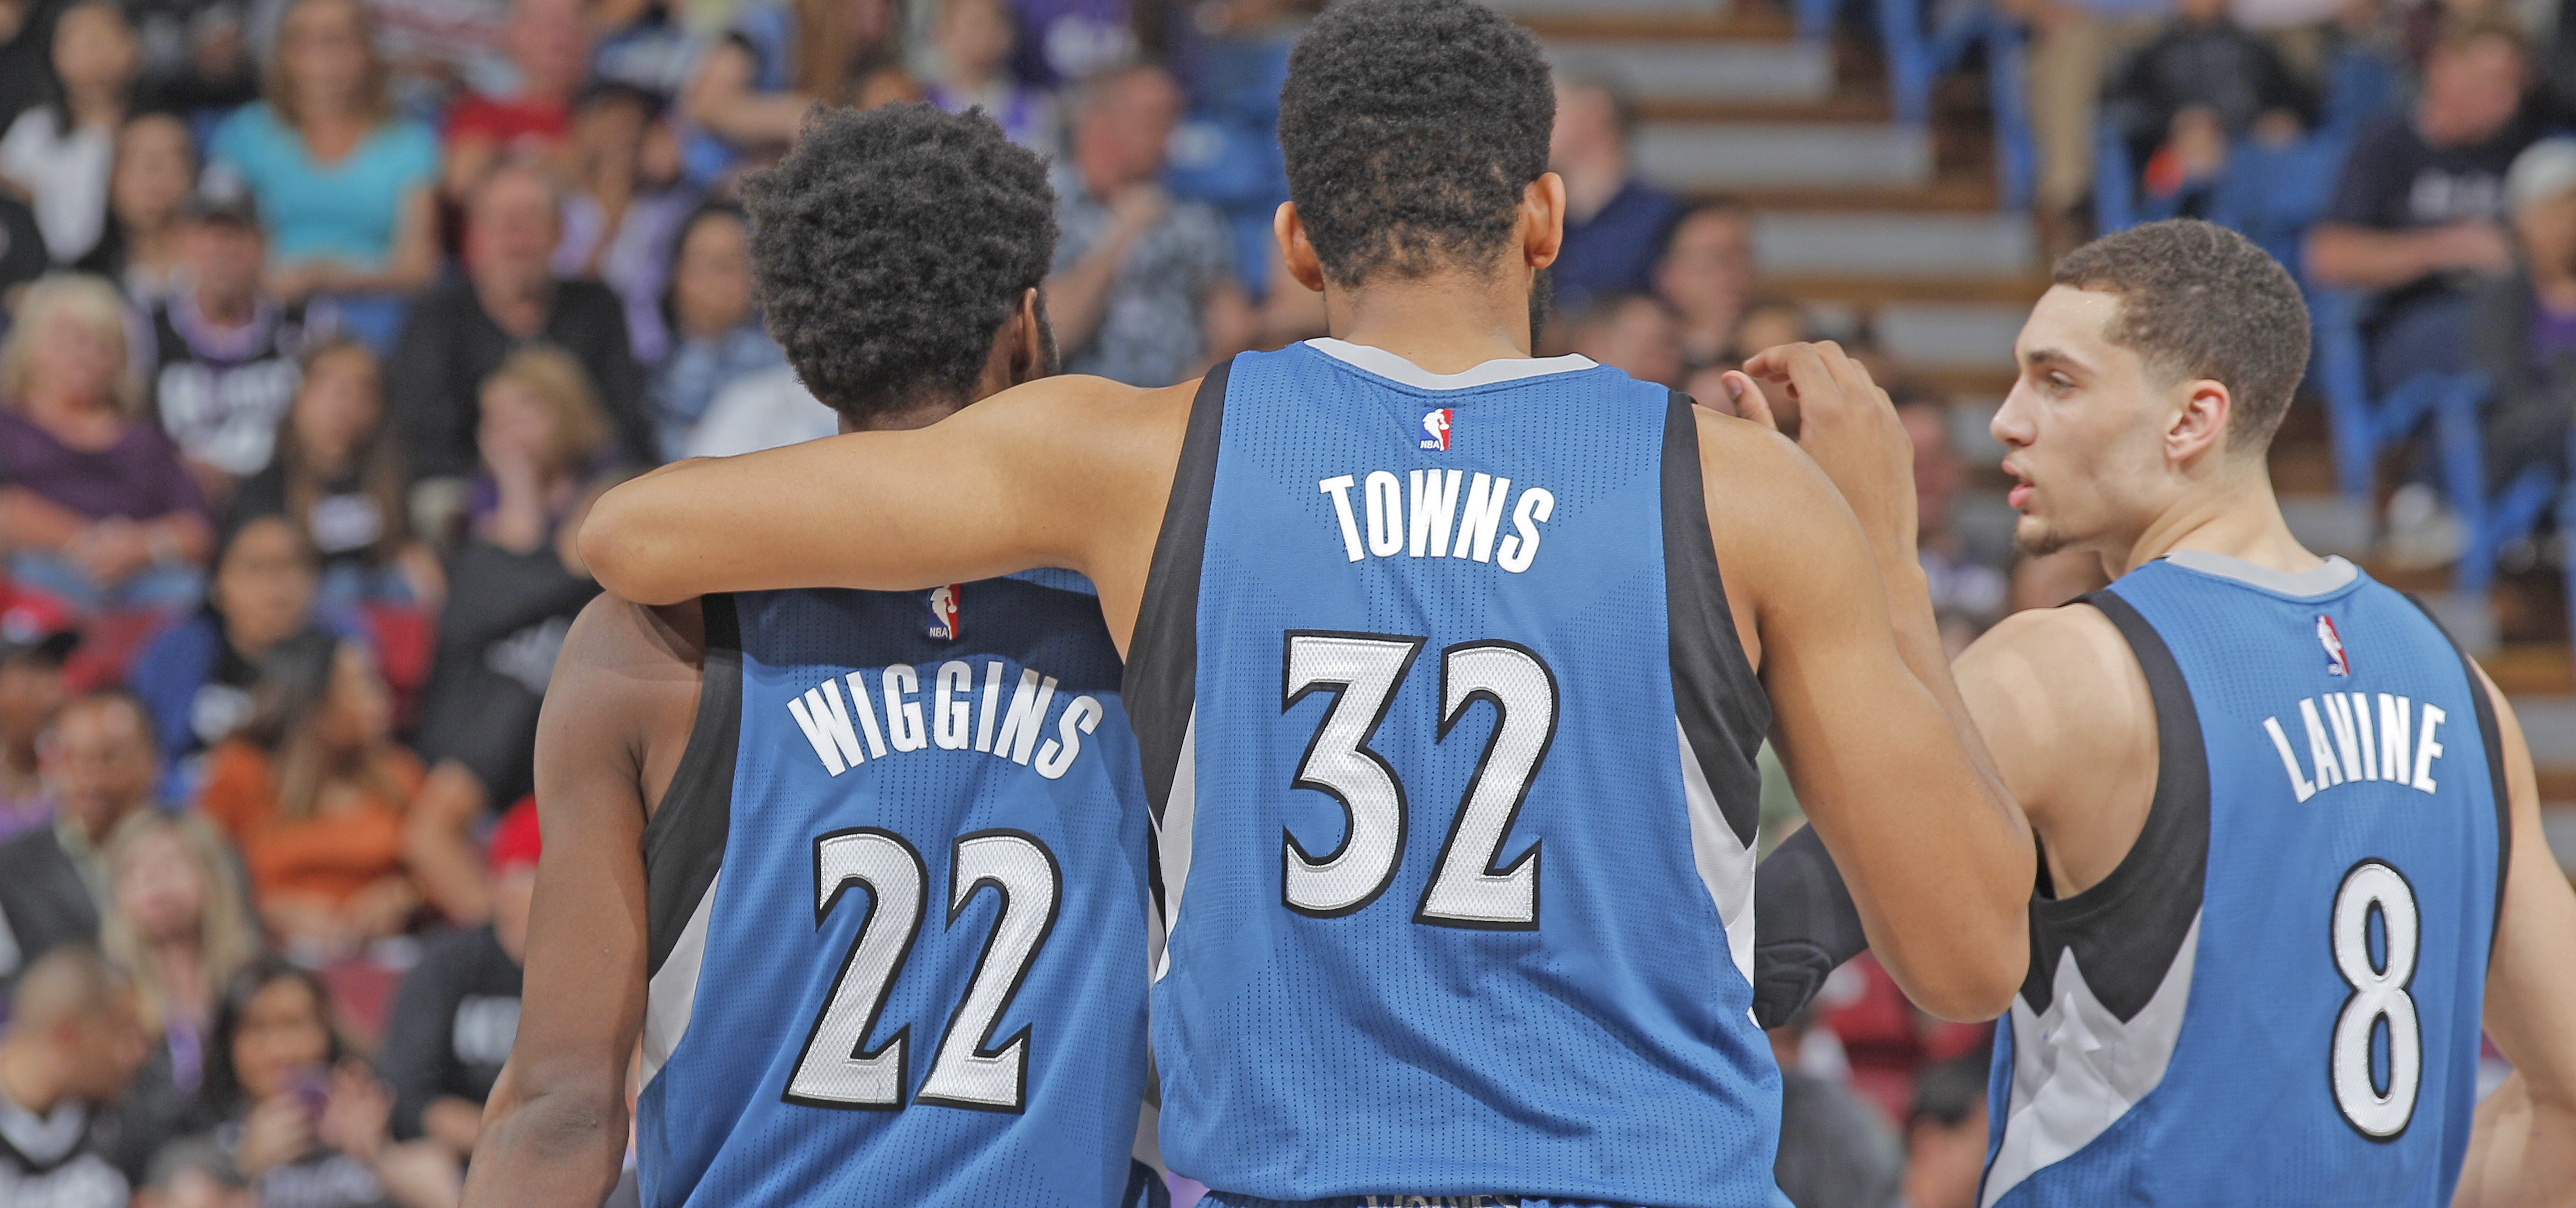 The weight on their shoulders - tale of the Timberwolves